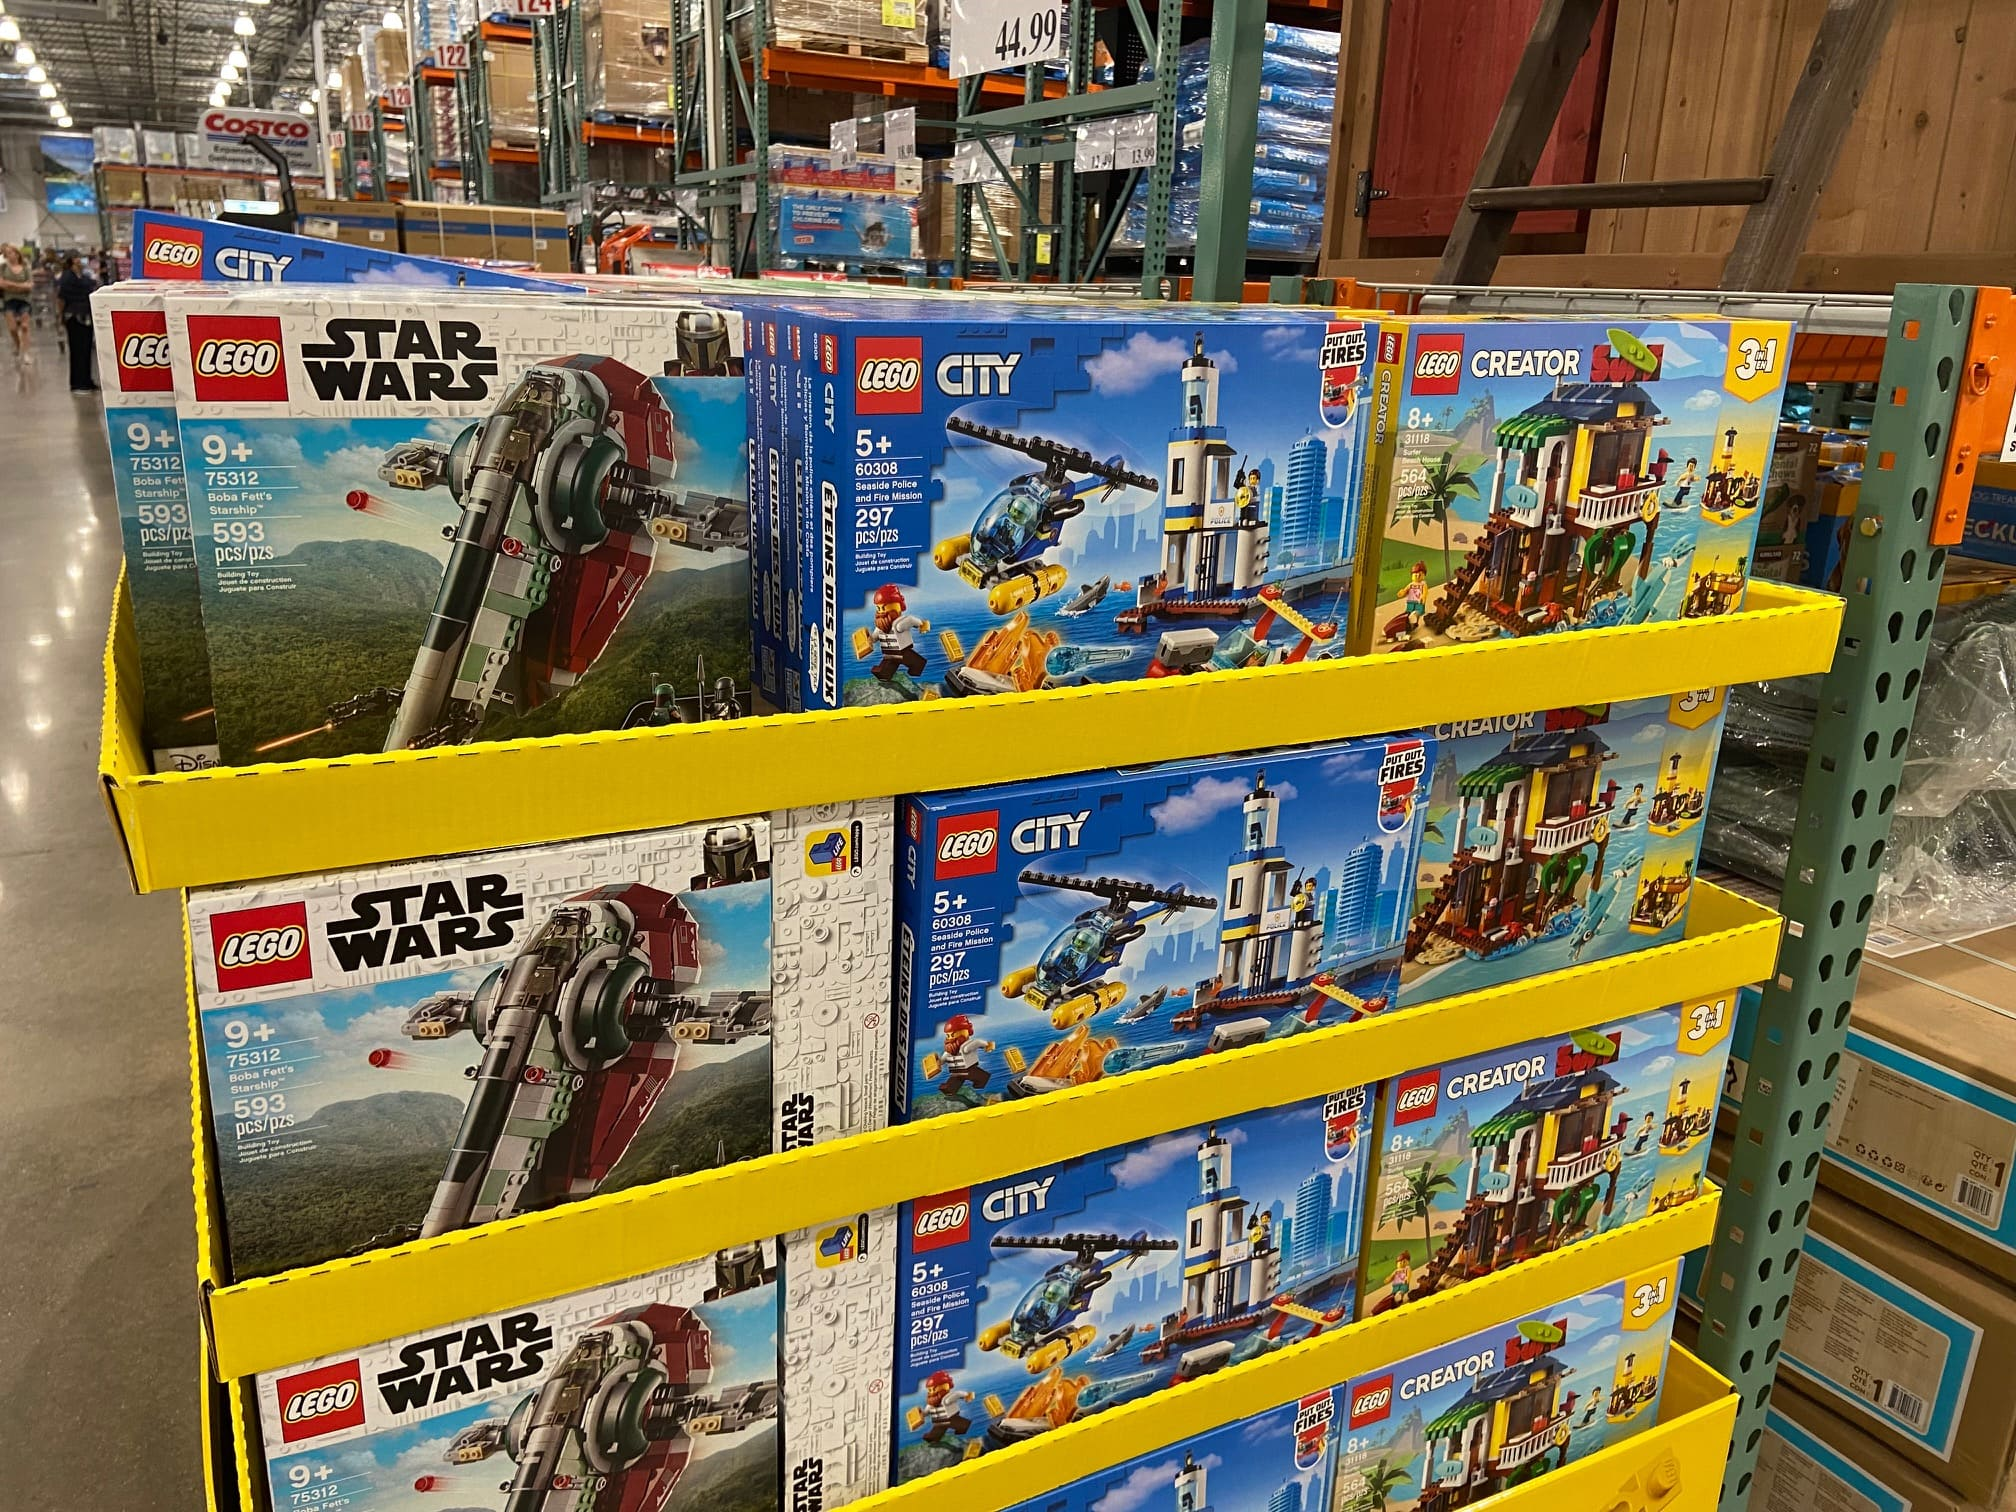 Costco - In Store - Lego Boba Fett's Starship, Surfer Beach House, & Seaside Police & Fire Mission Sets - $39 Each